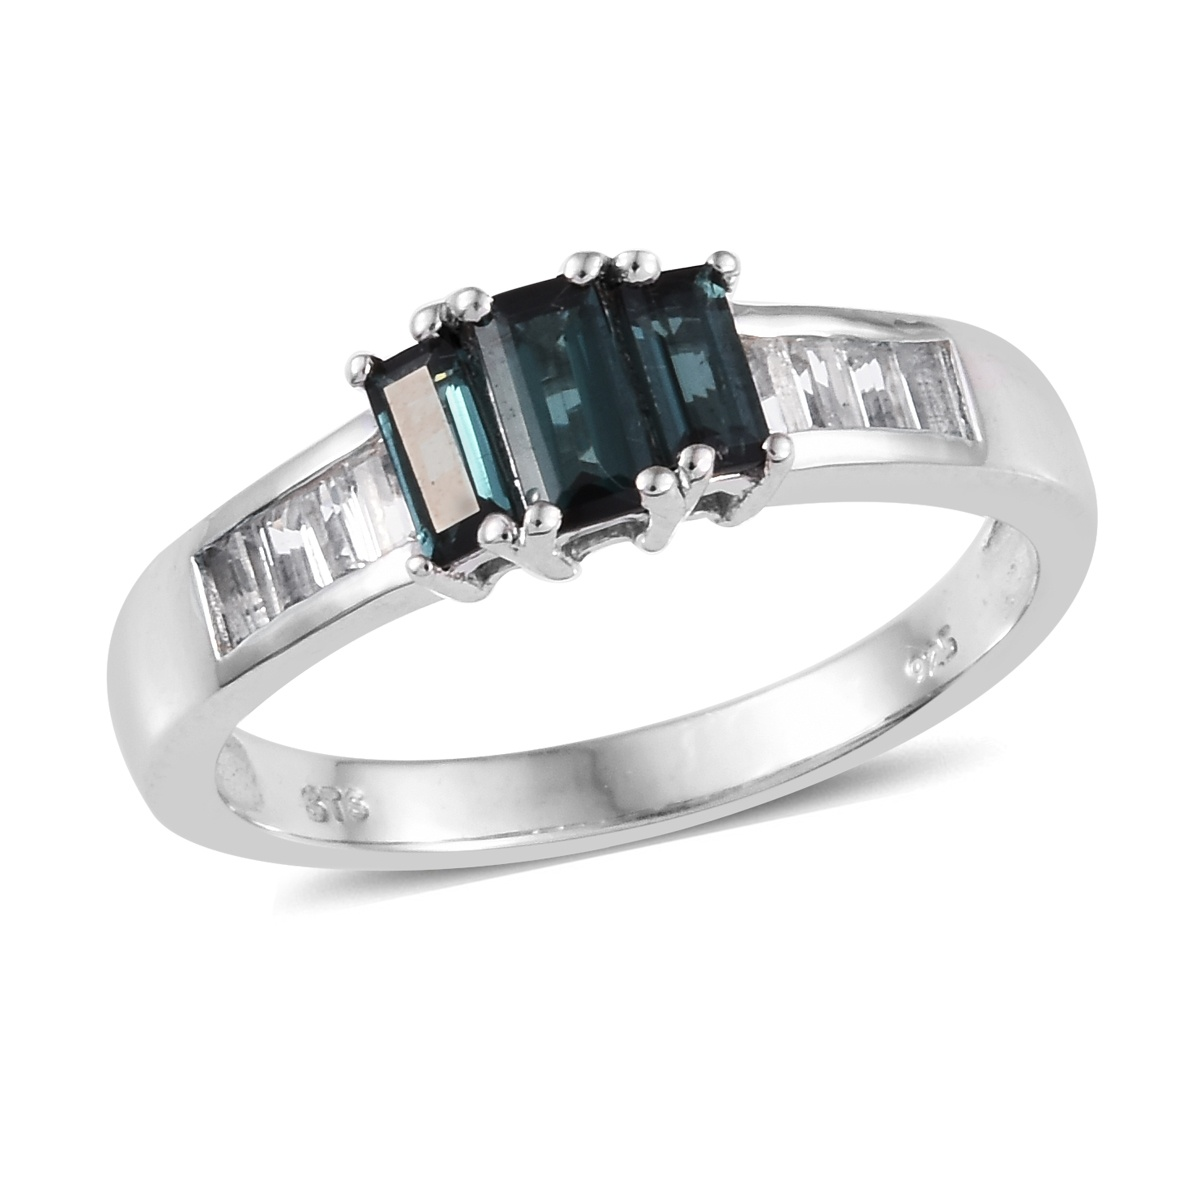 Monte Belo Indicolite, White Topaz Ring in Platinum Over Sterling Silver (Size 10.0) 1.28 ctw